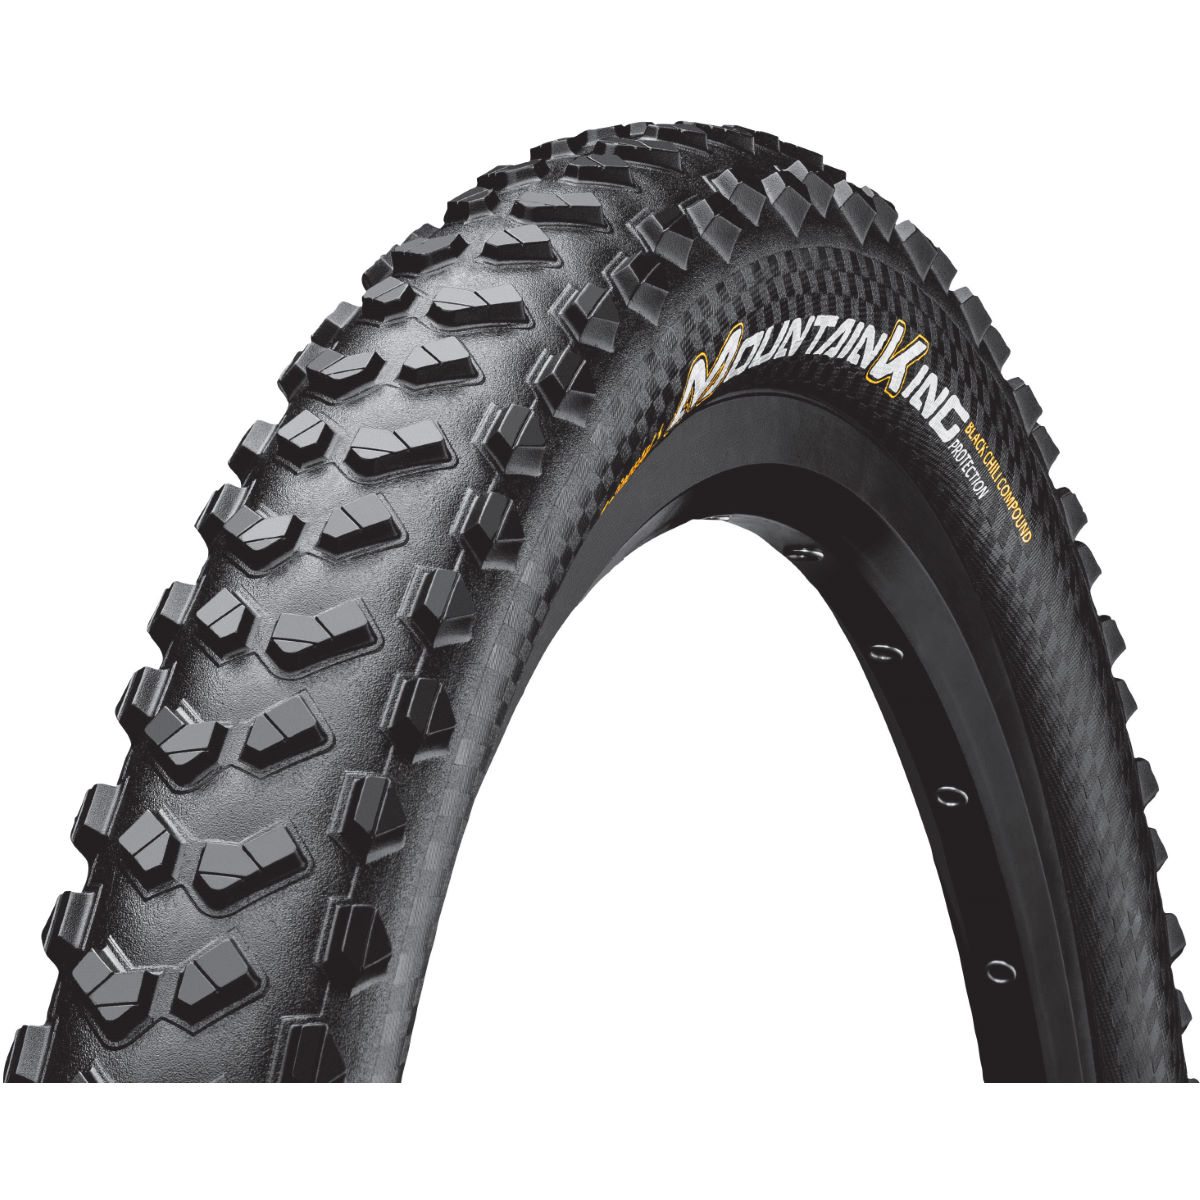 Continental Continental Mountain King Folding MTB Tyre - ProTection   Tyres